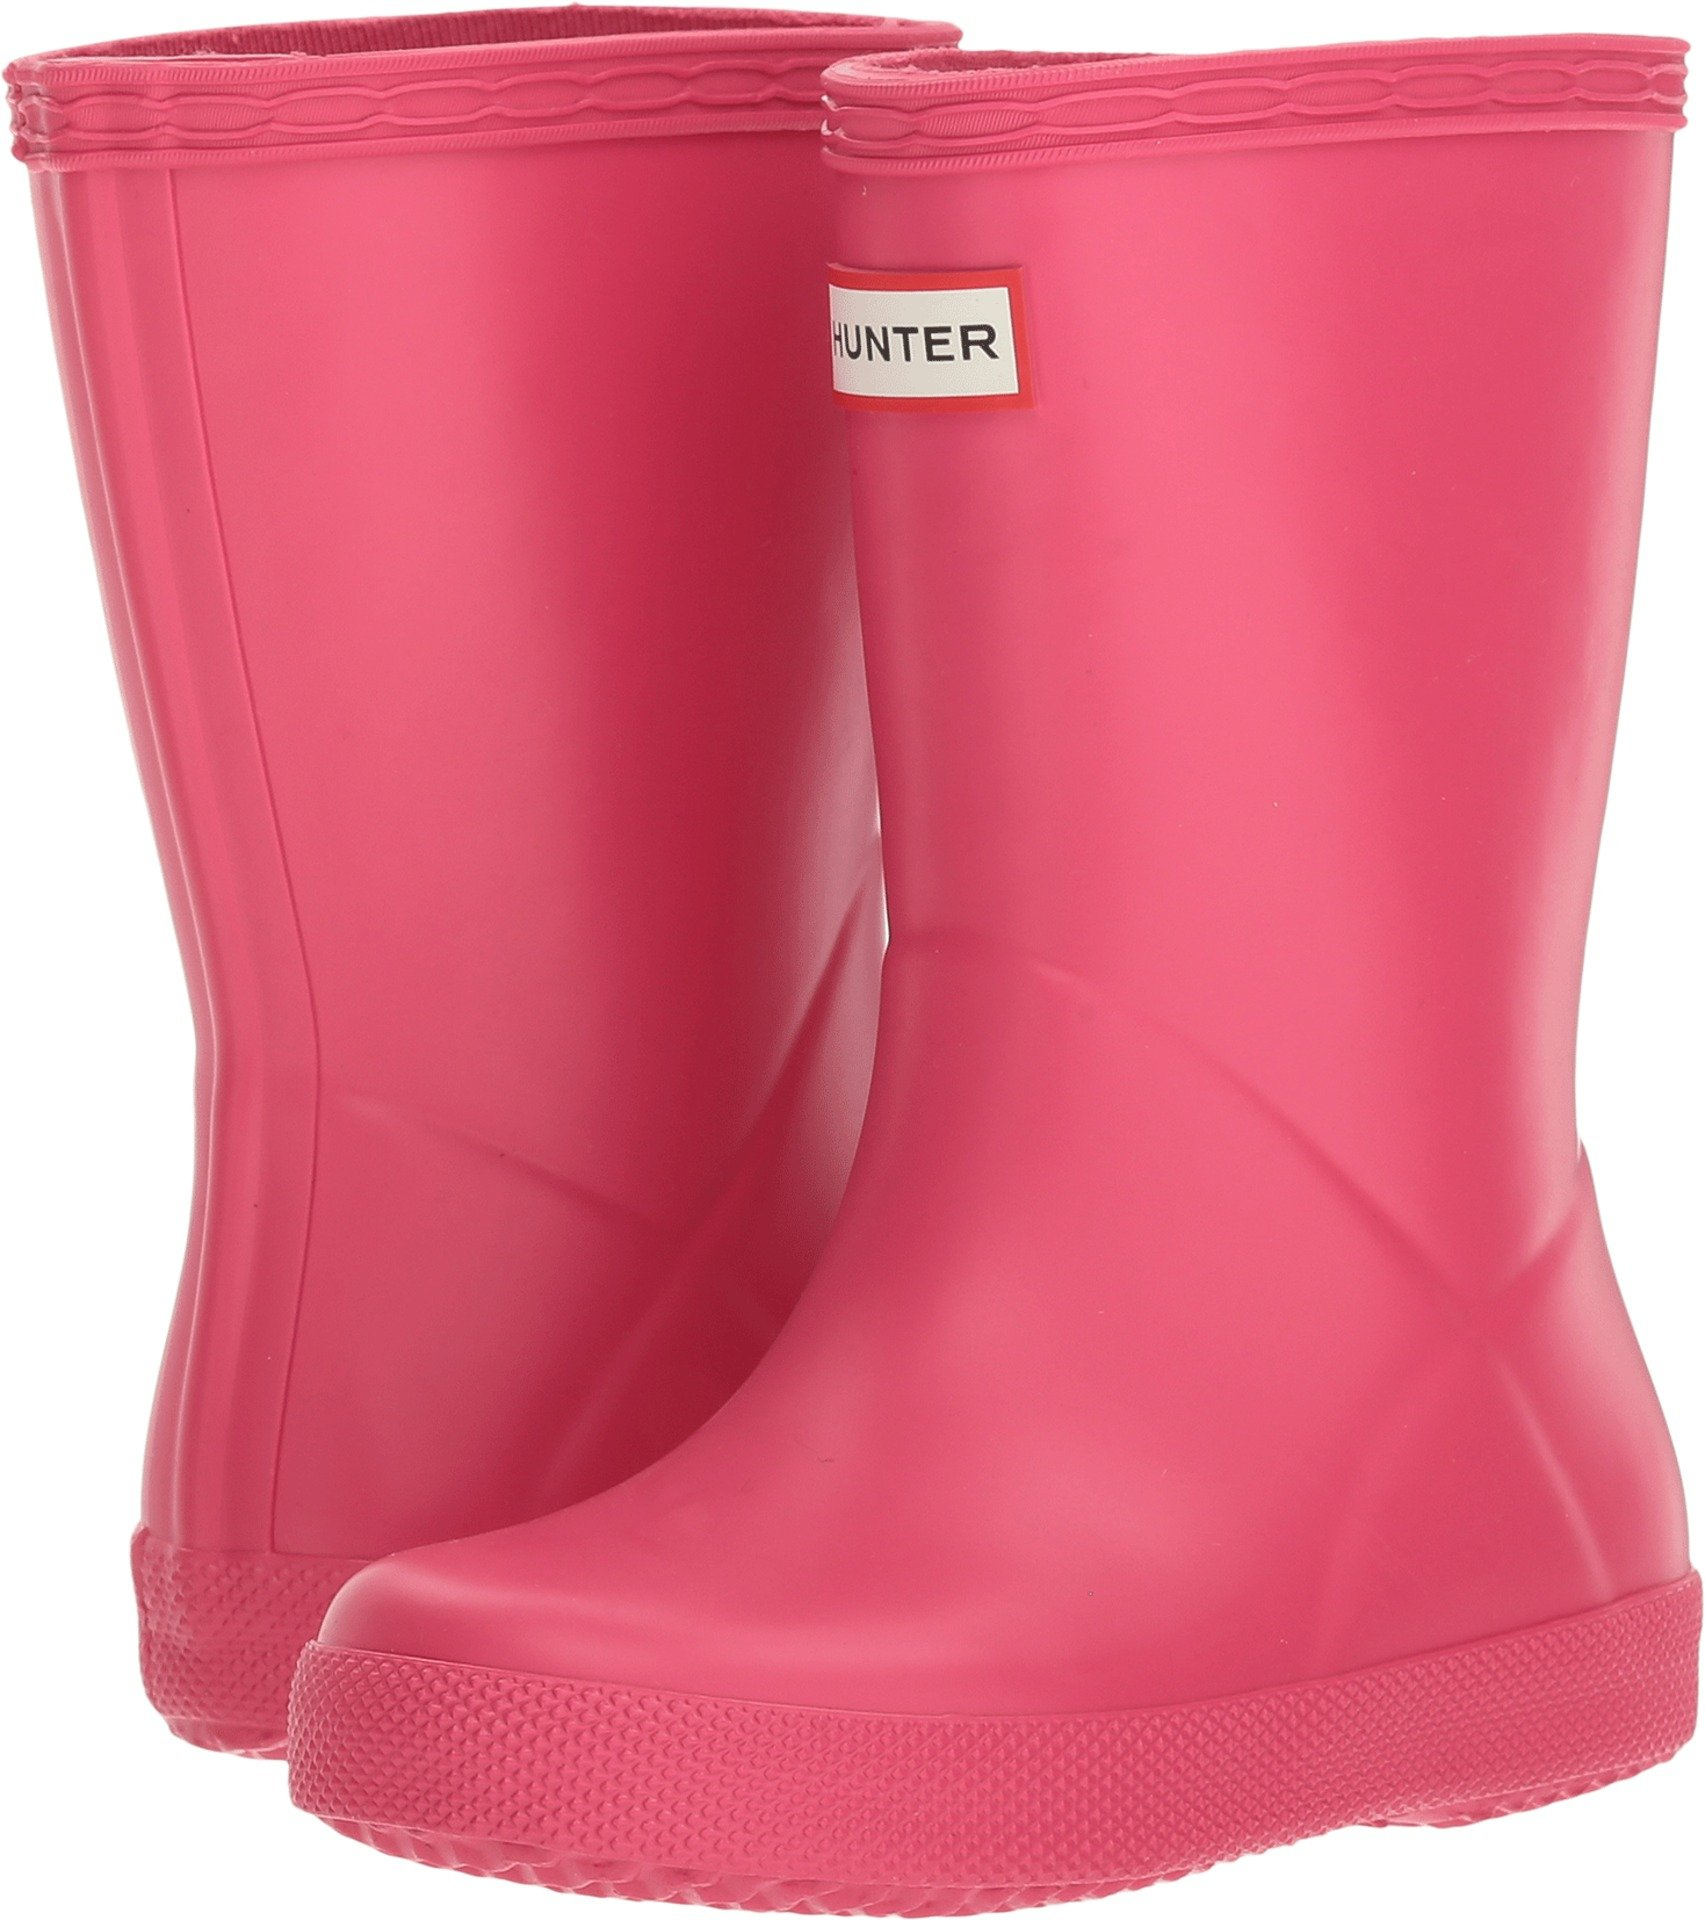 Hunter Kids Unisex Original Kids' First Classic Rain Boot (Toddler/Little Kid) Bright Pink 7 M US Toddler M